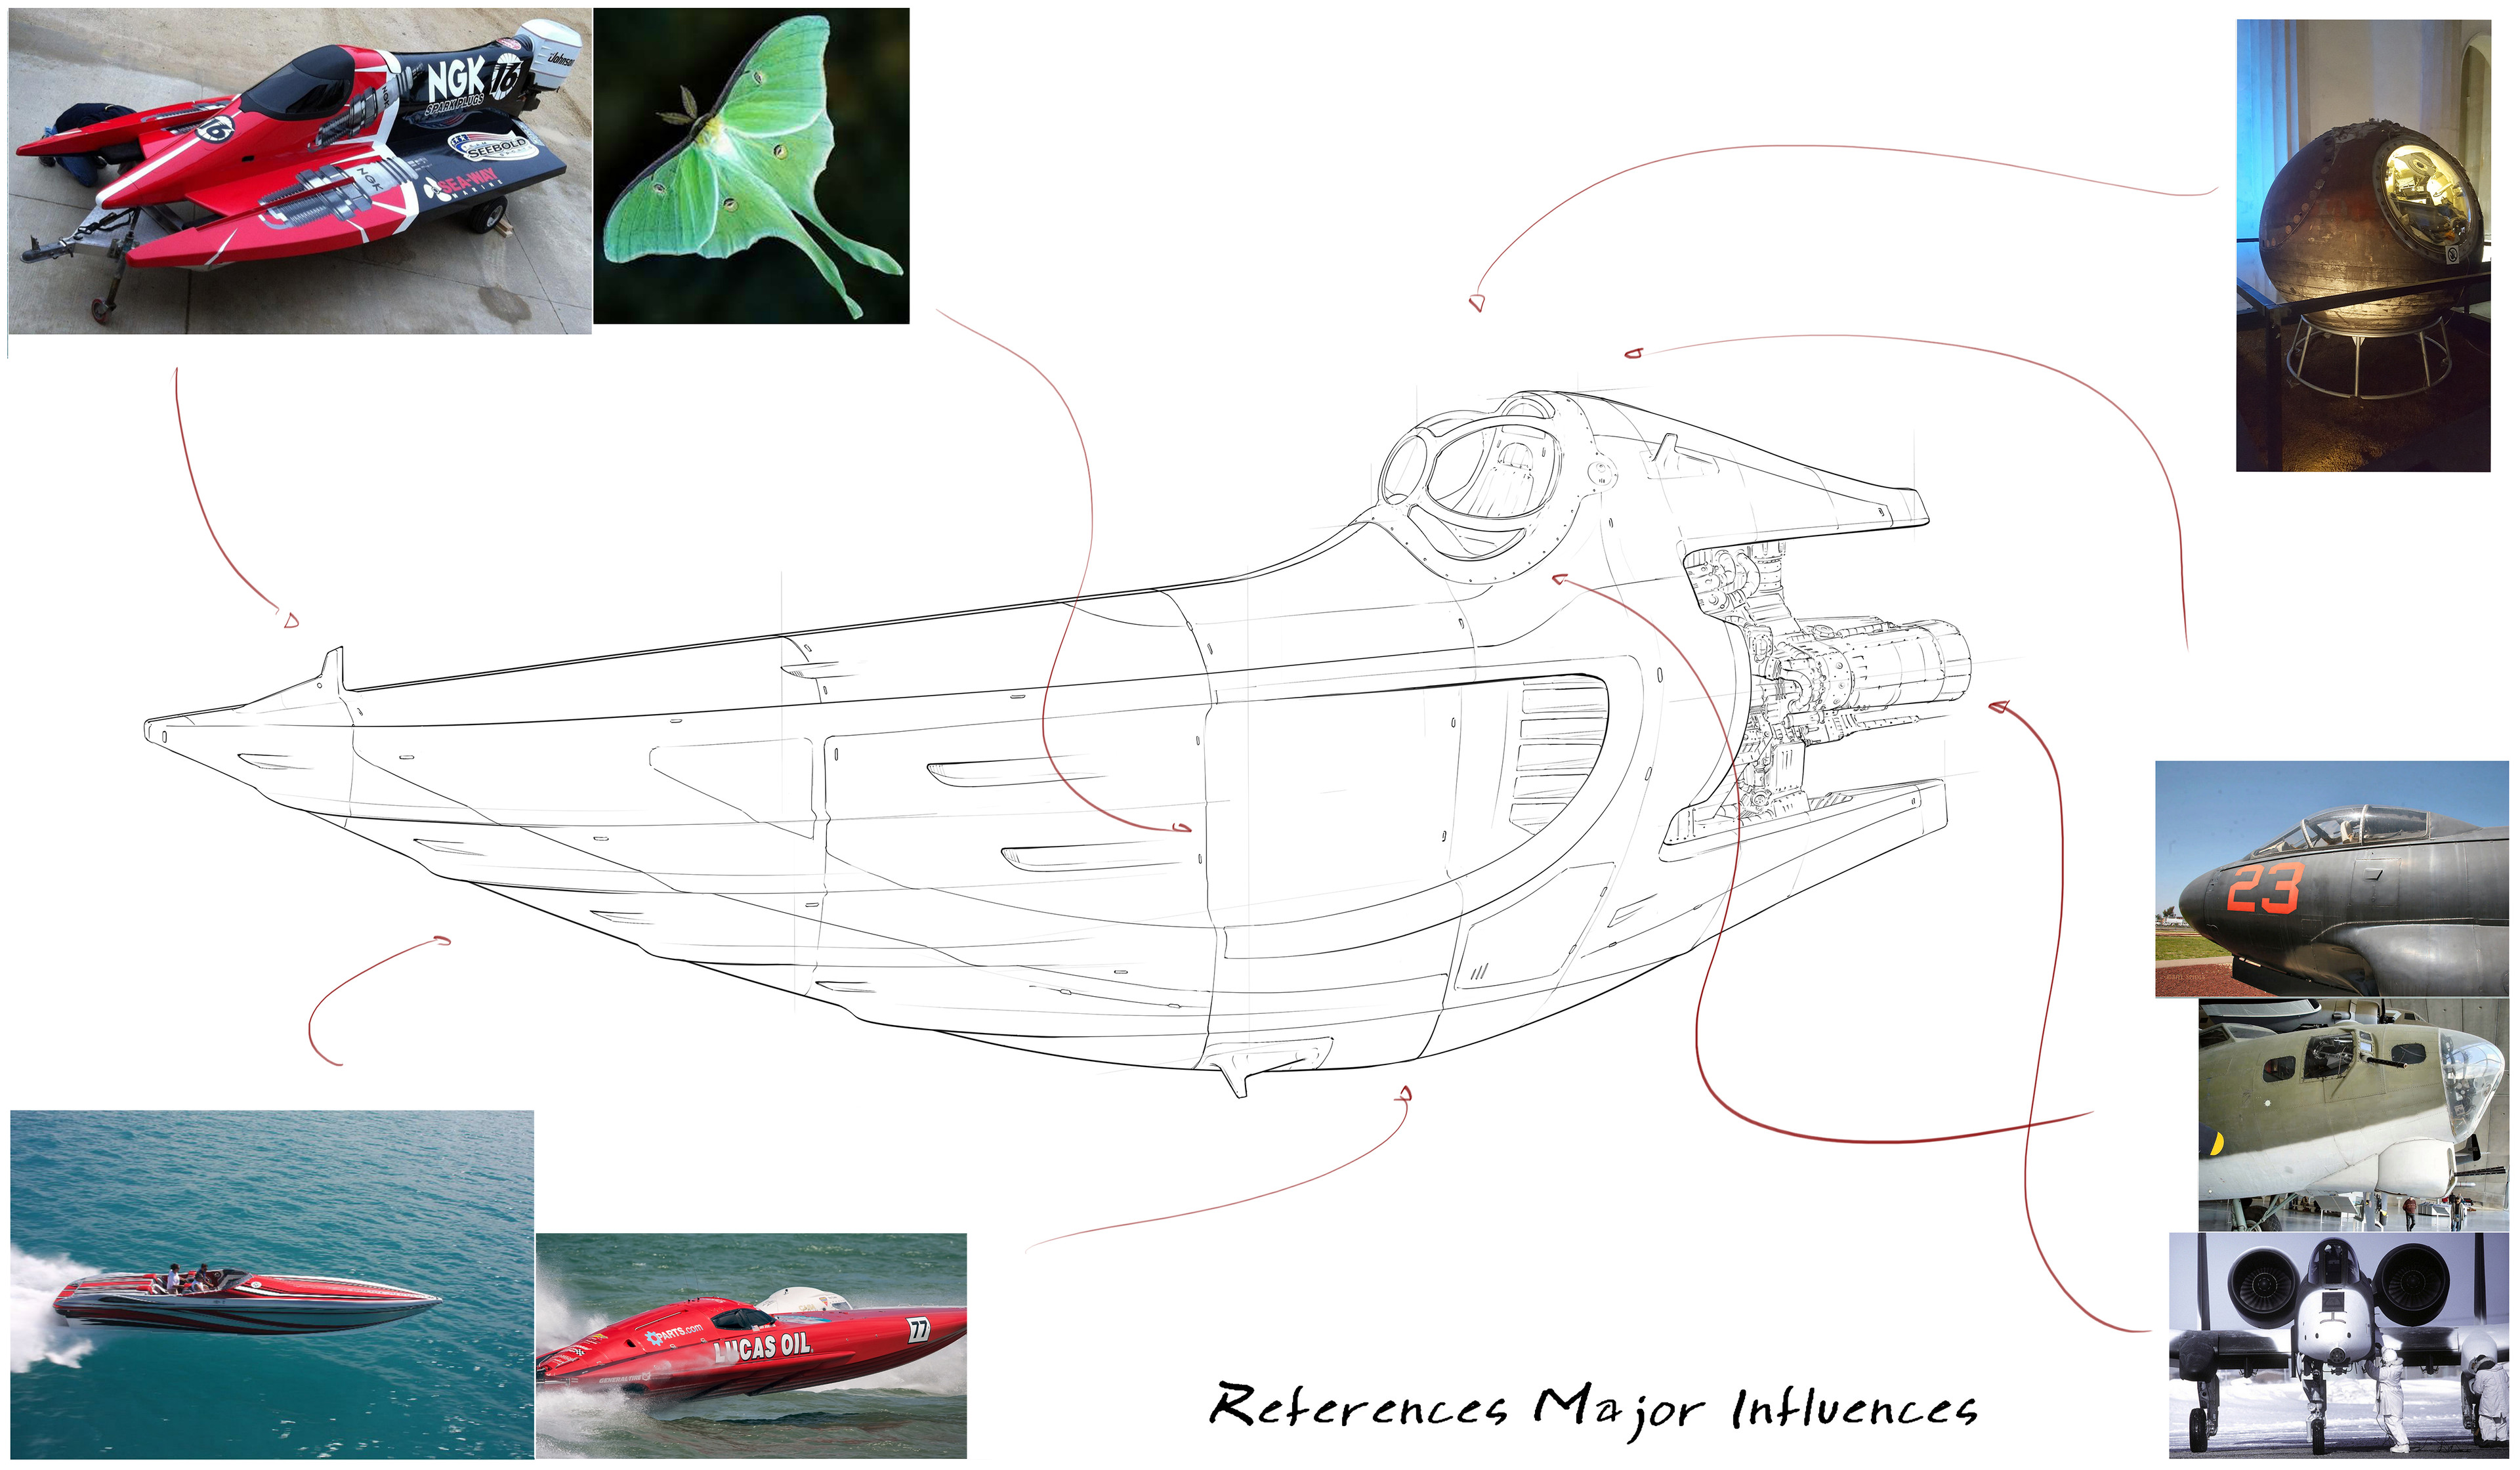 Major design influeces from references